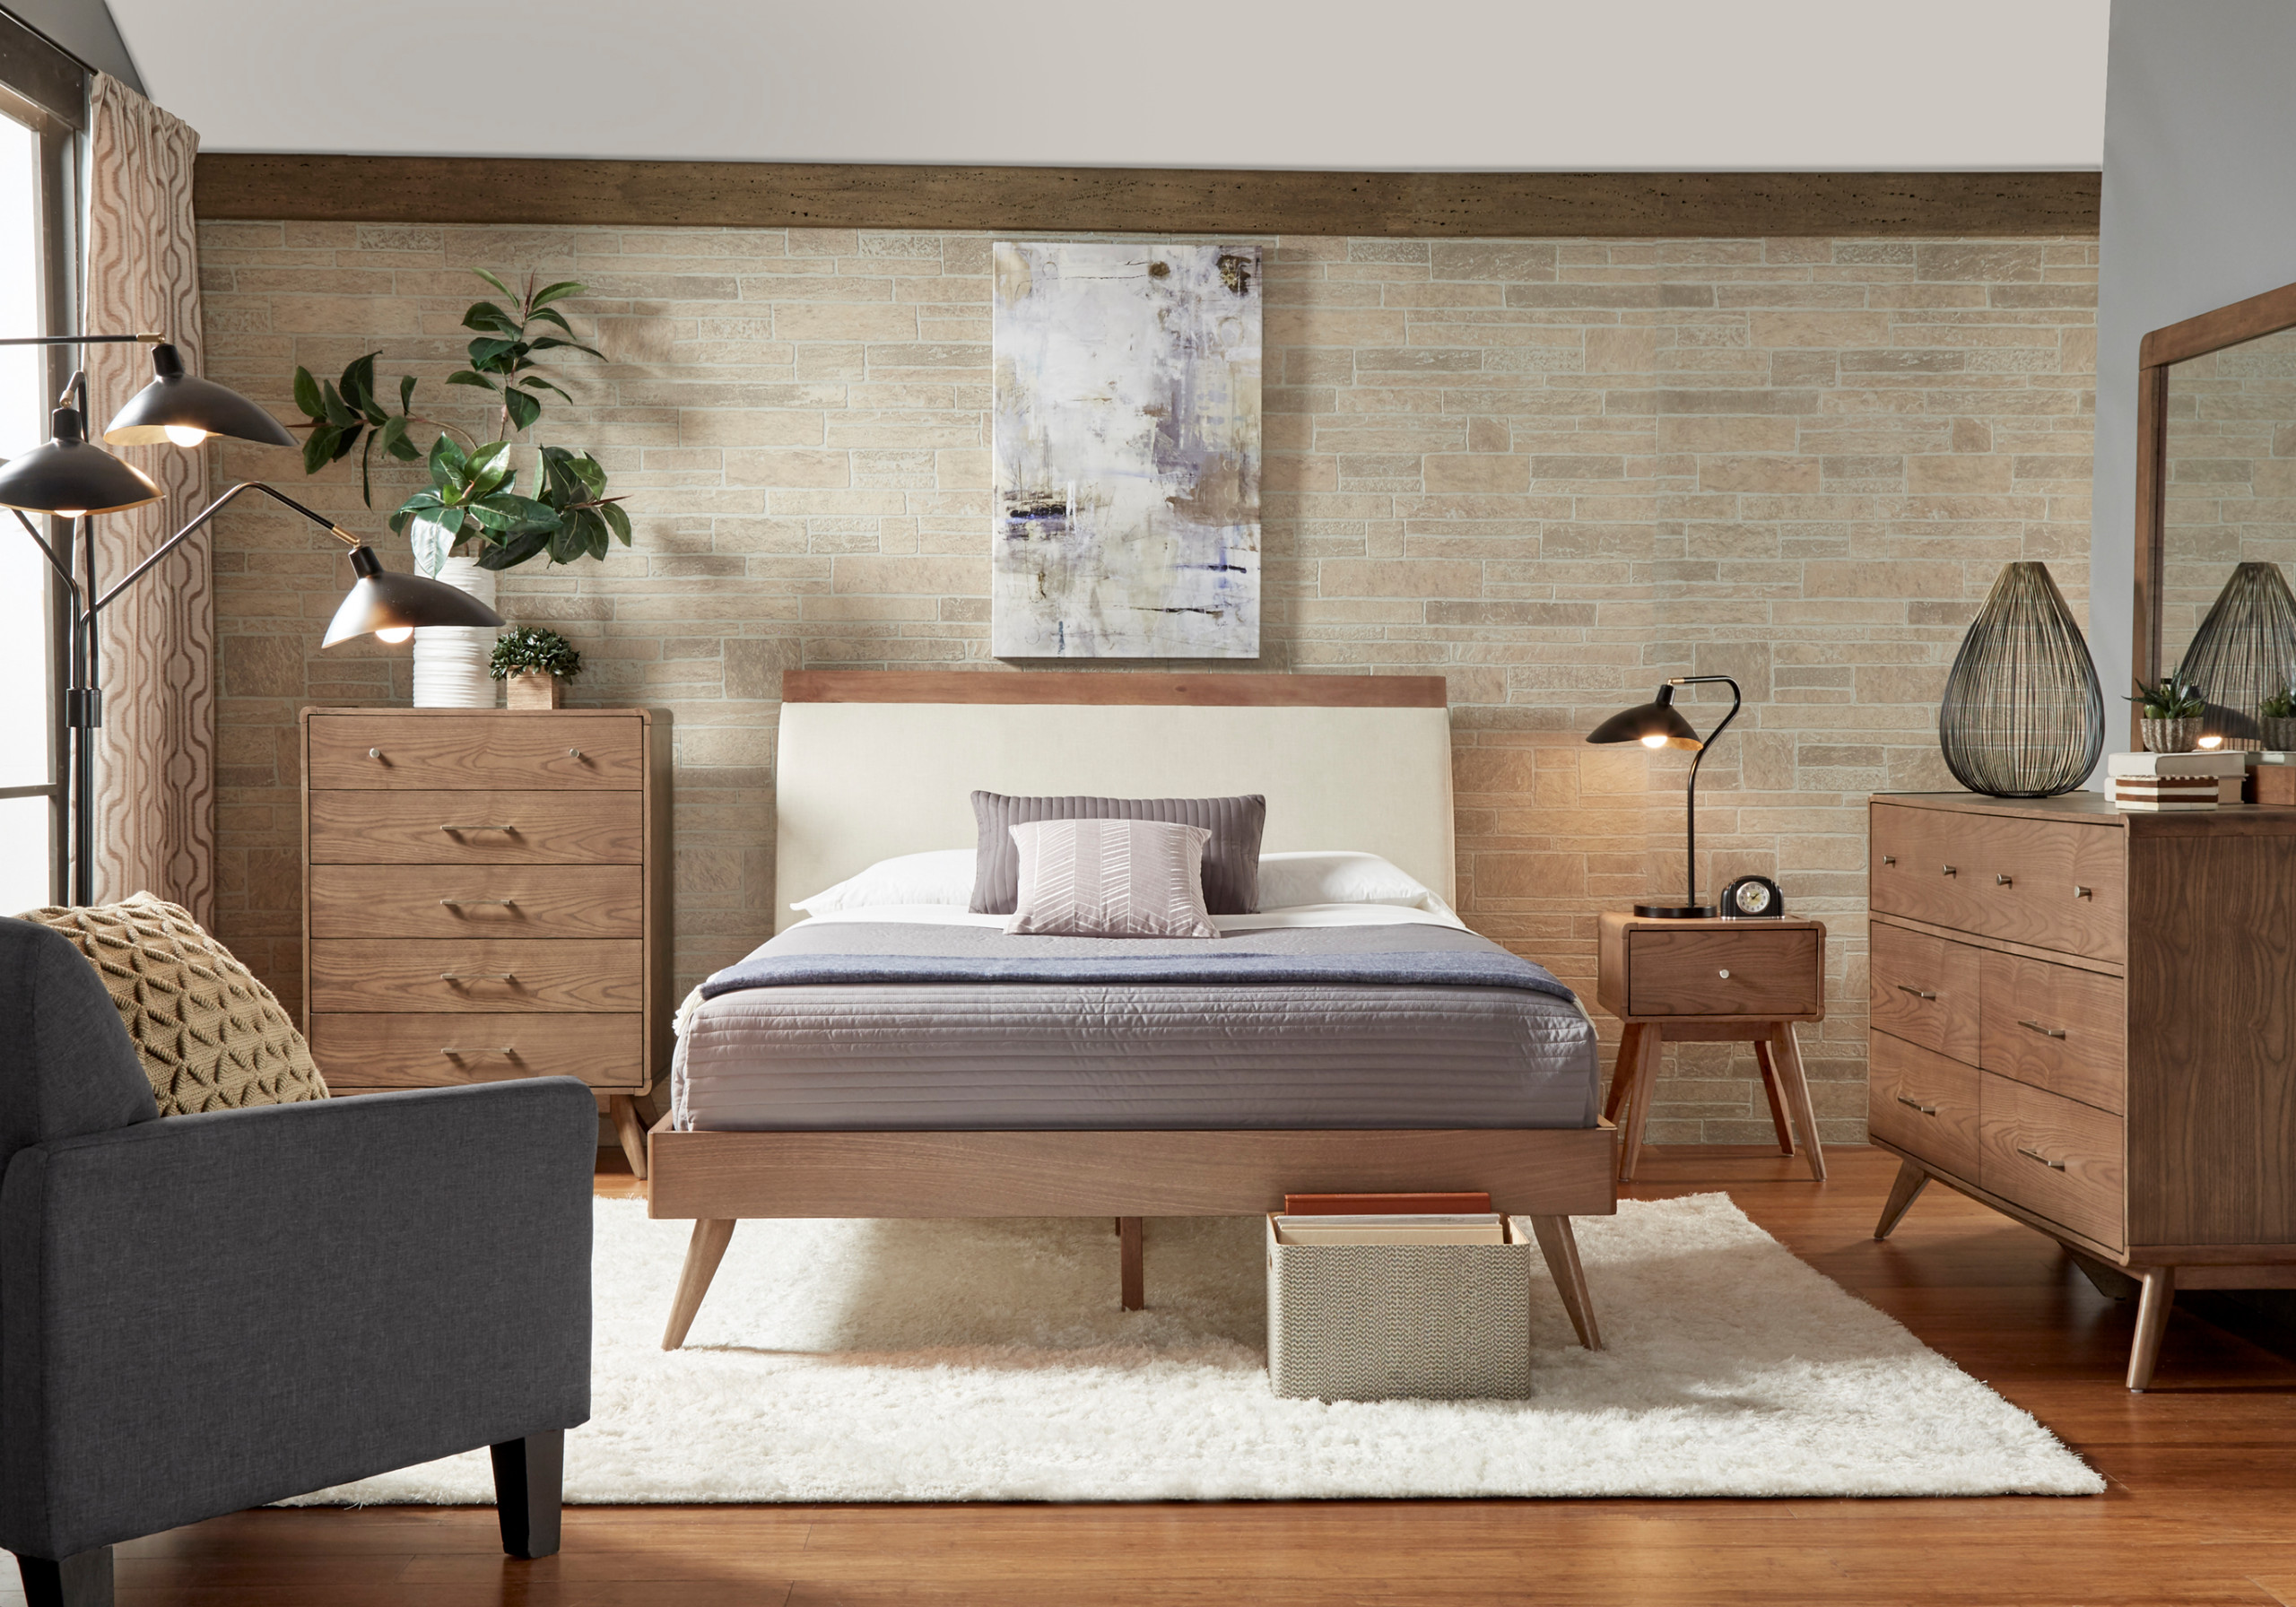 75 Beautiful Mid Century Modern Bedroom Pictures Ideas February 2021 Houzz